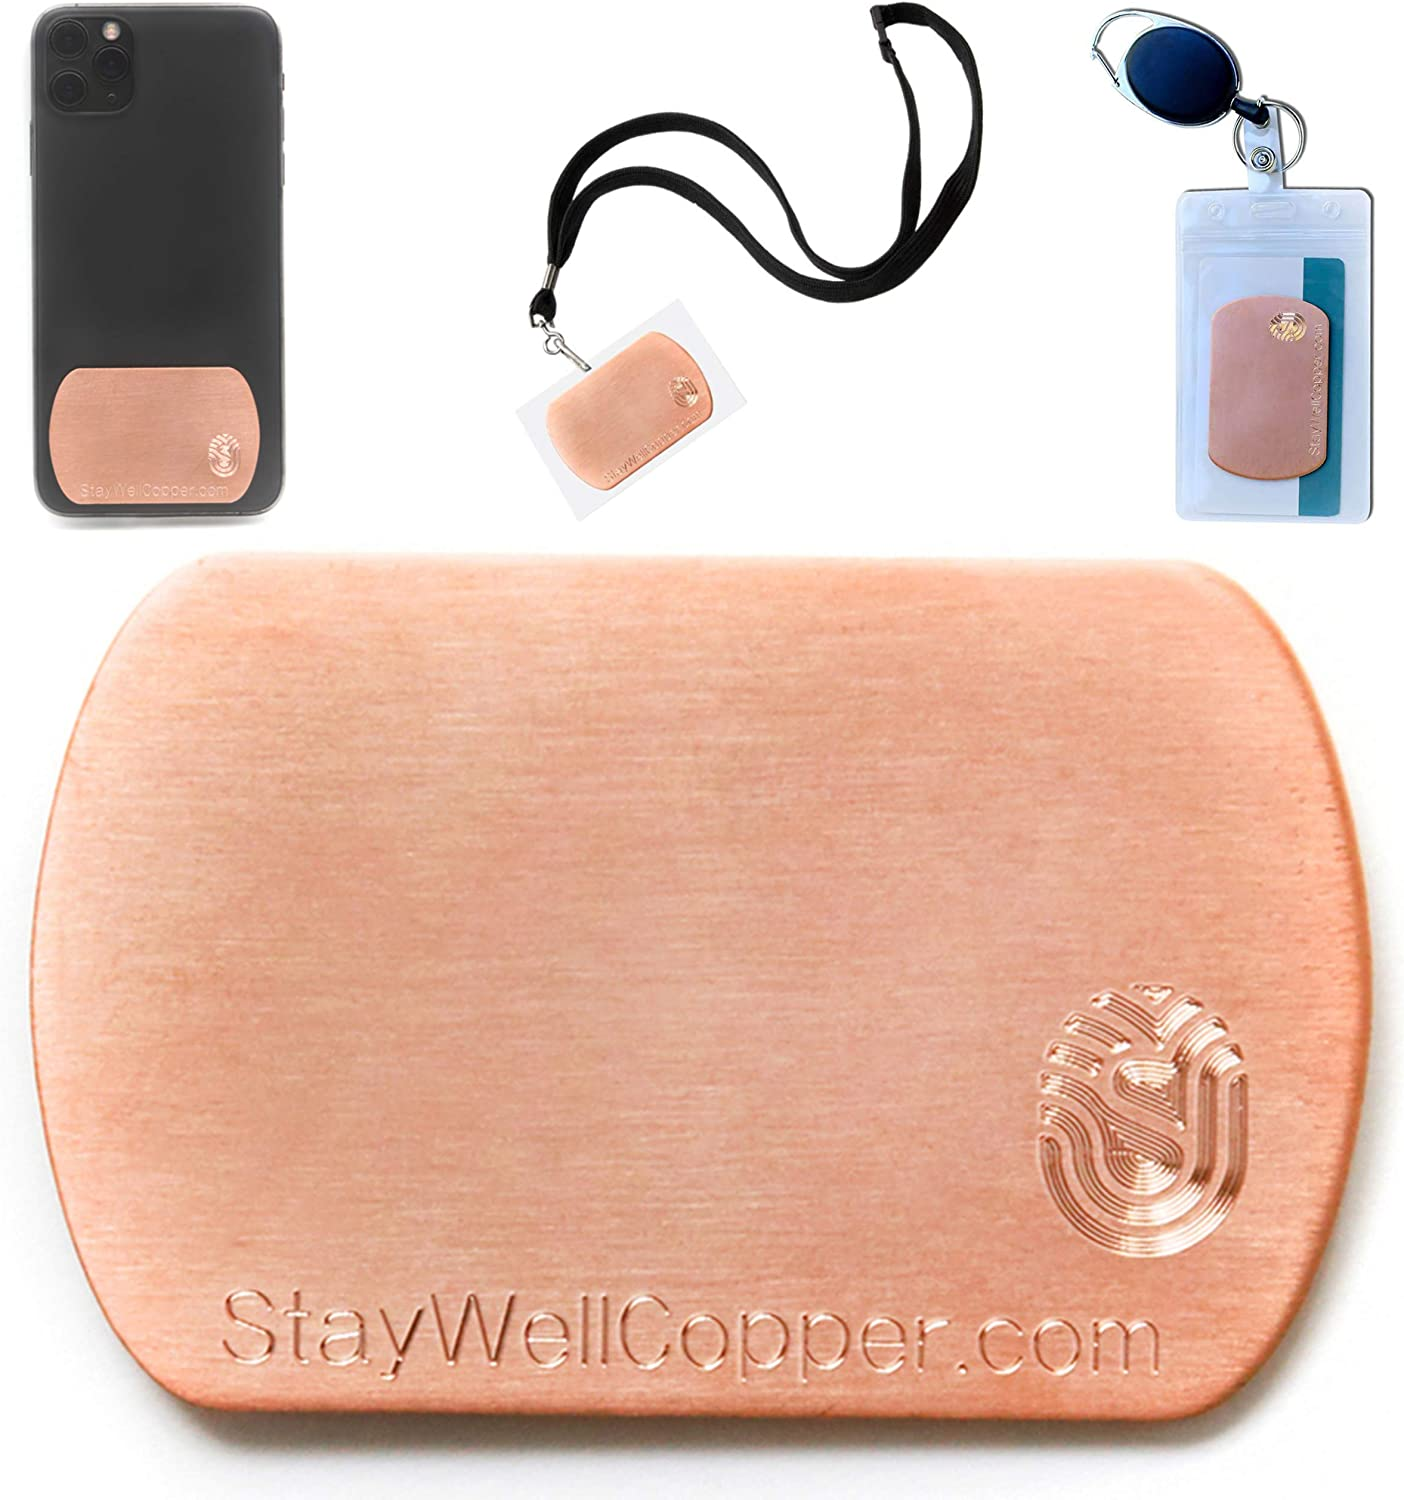 Pure Copper Phone Patch Plat to Attach – All New mail order items in the store